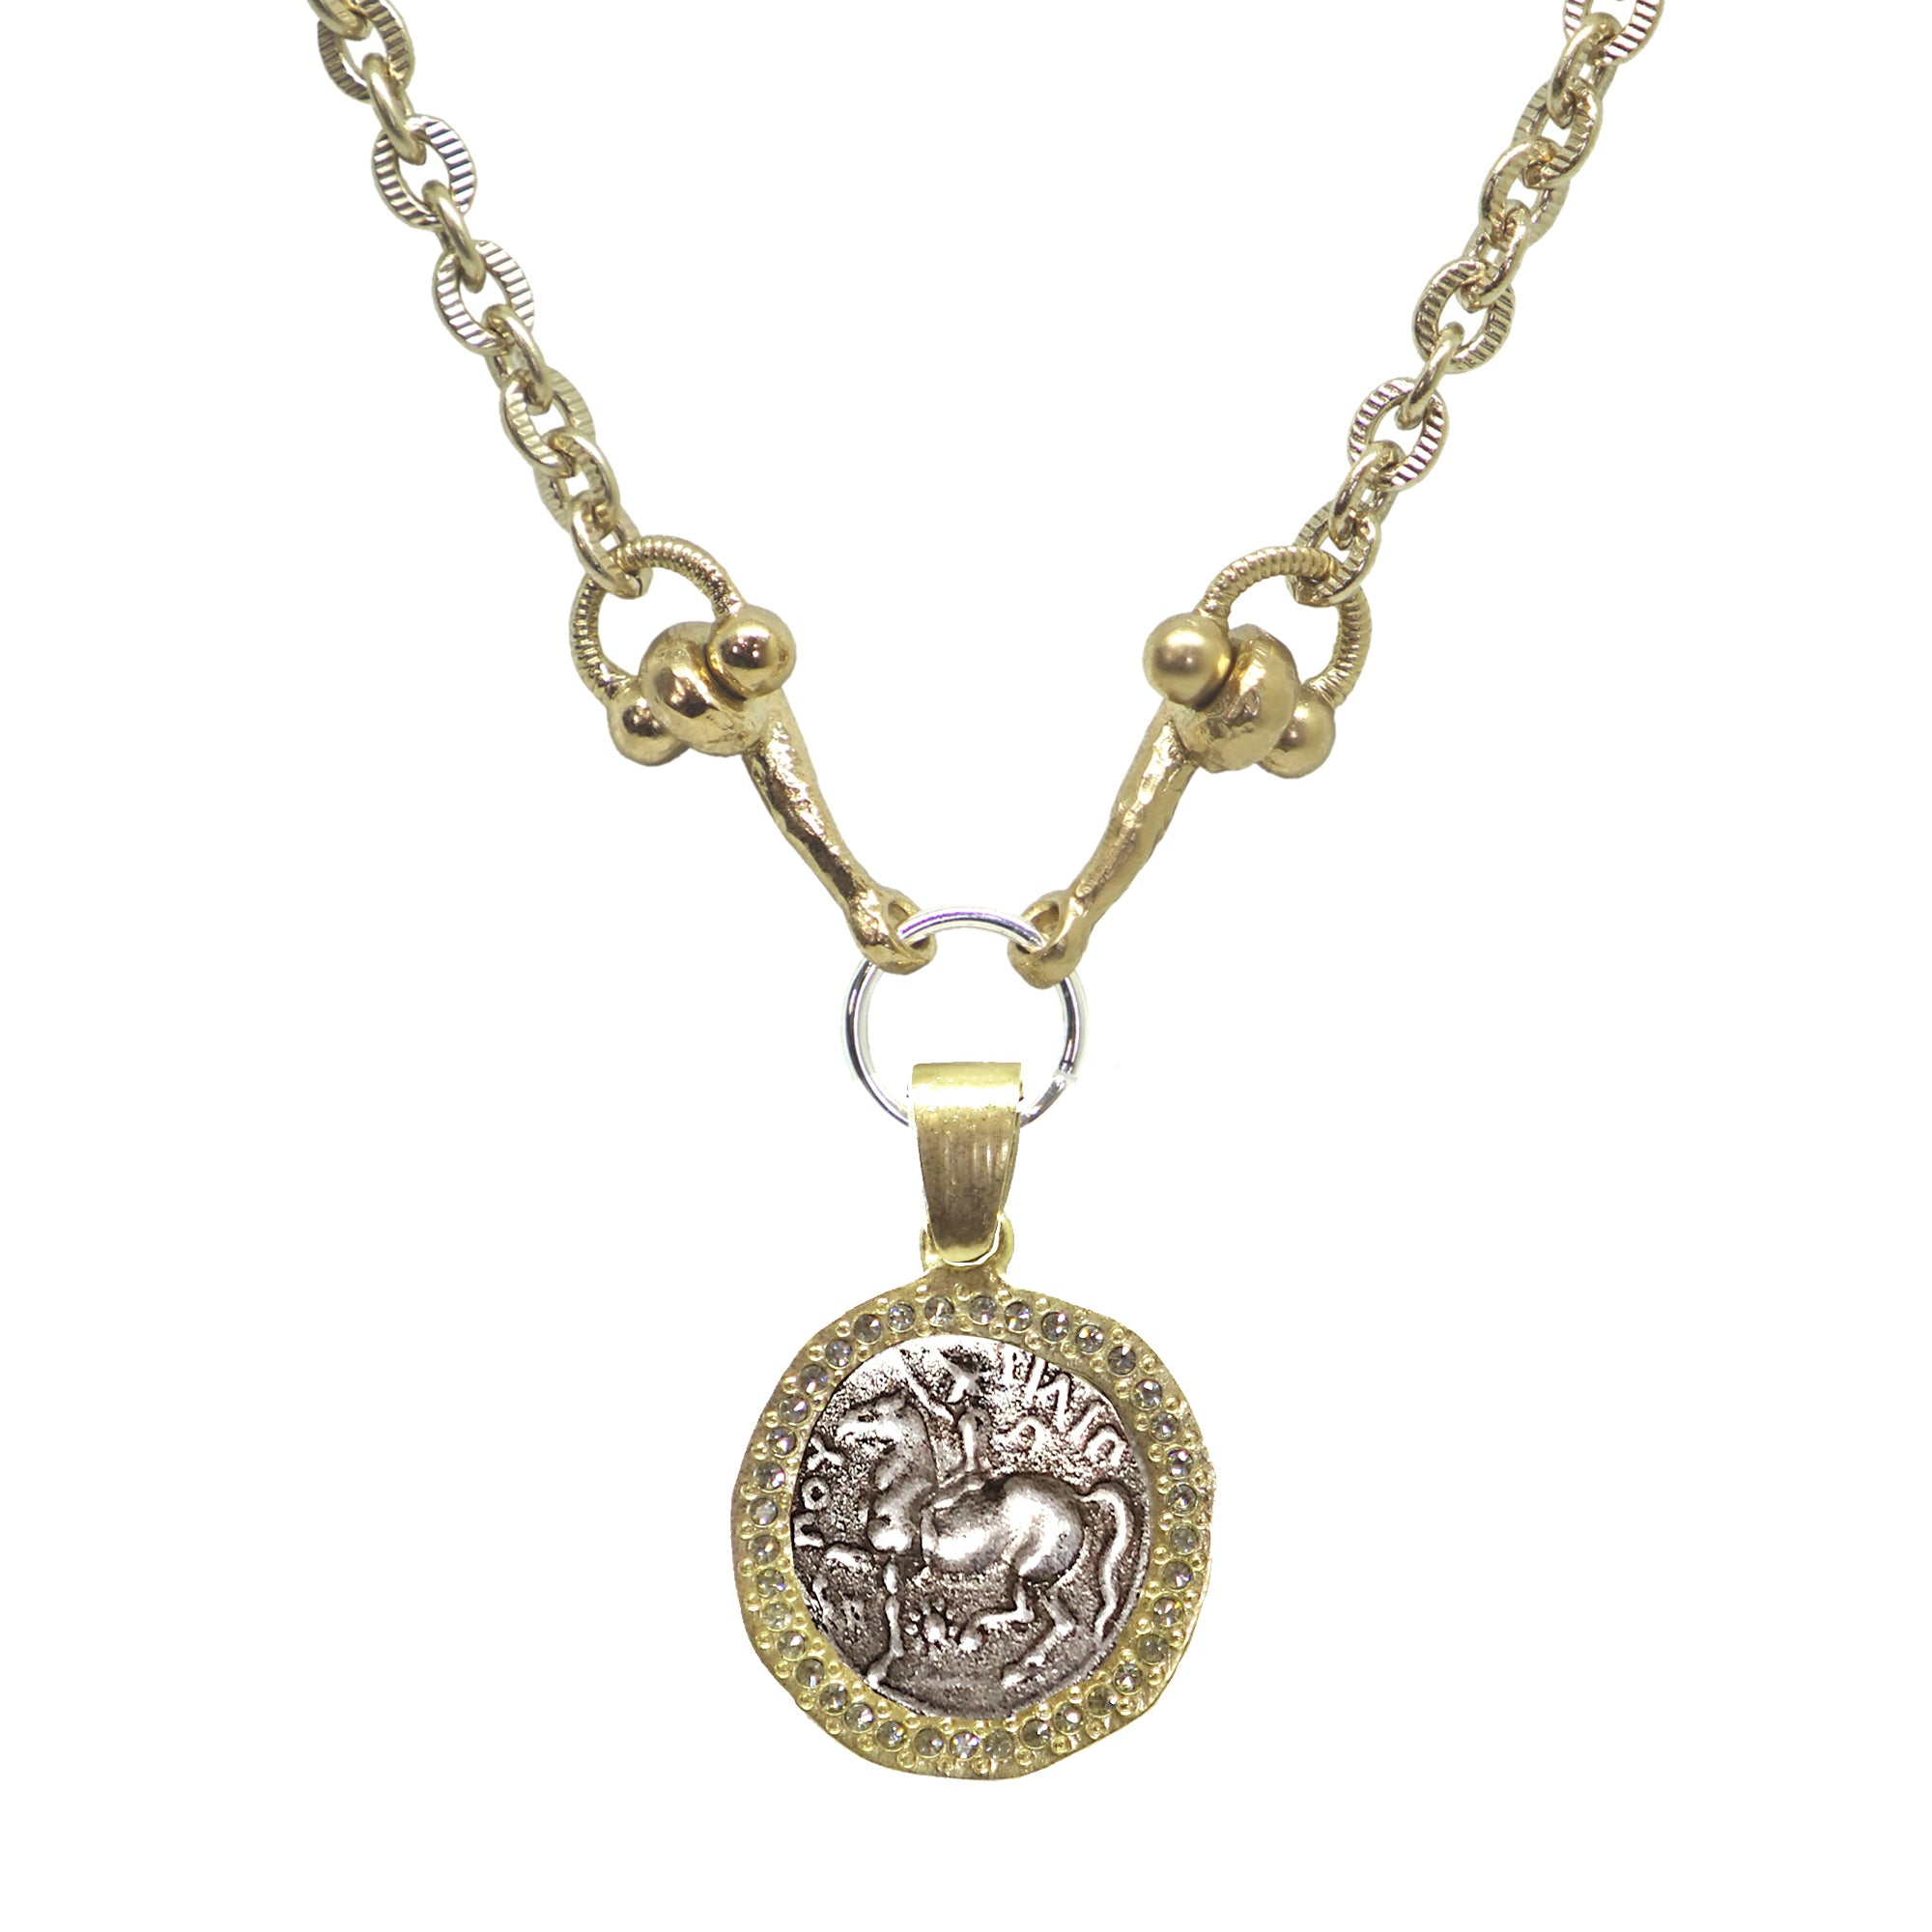 GOLD HORSE CRYSTAL BEZEL HORSEBIT NECKLACE